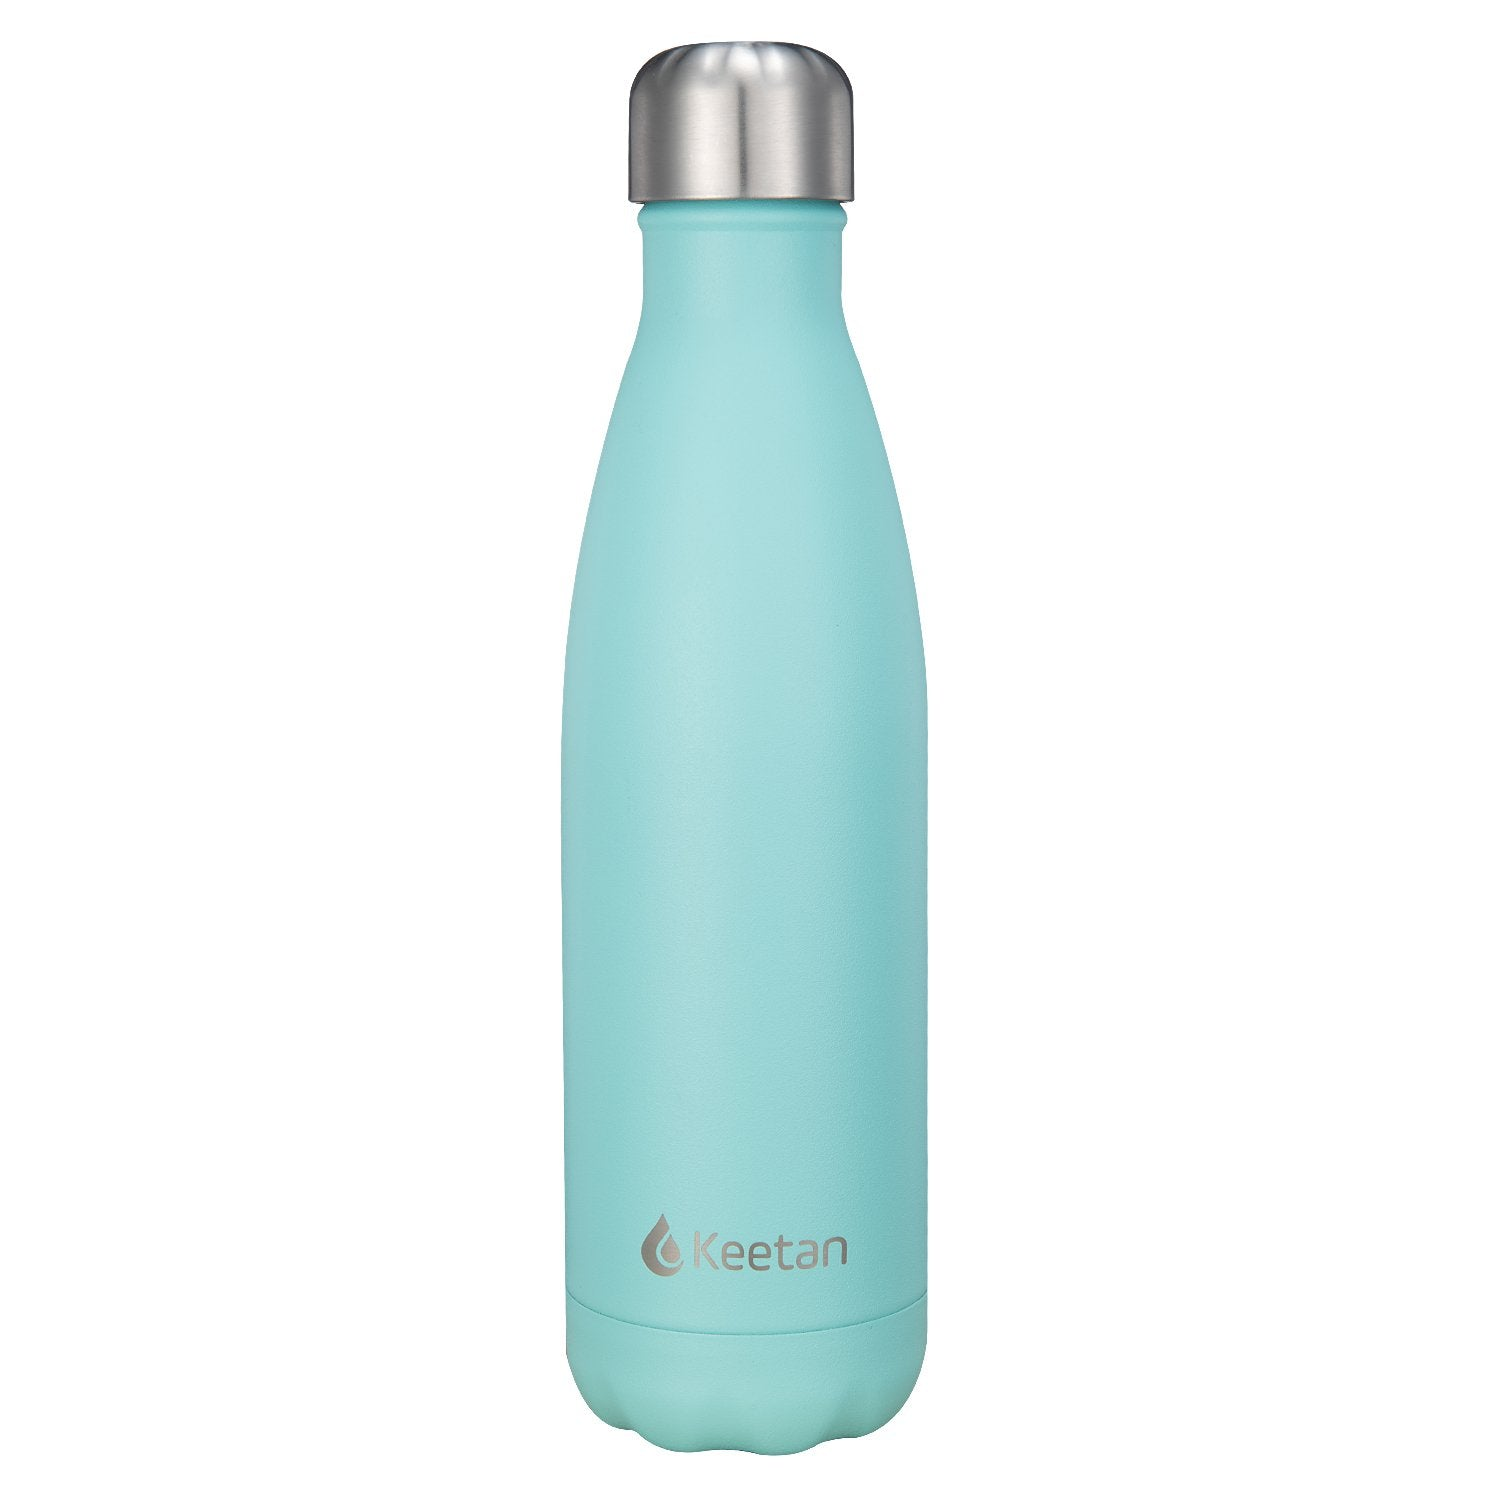 Keetan AIR Max Water Bottle-Green